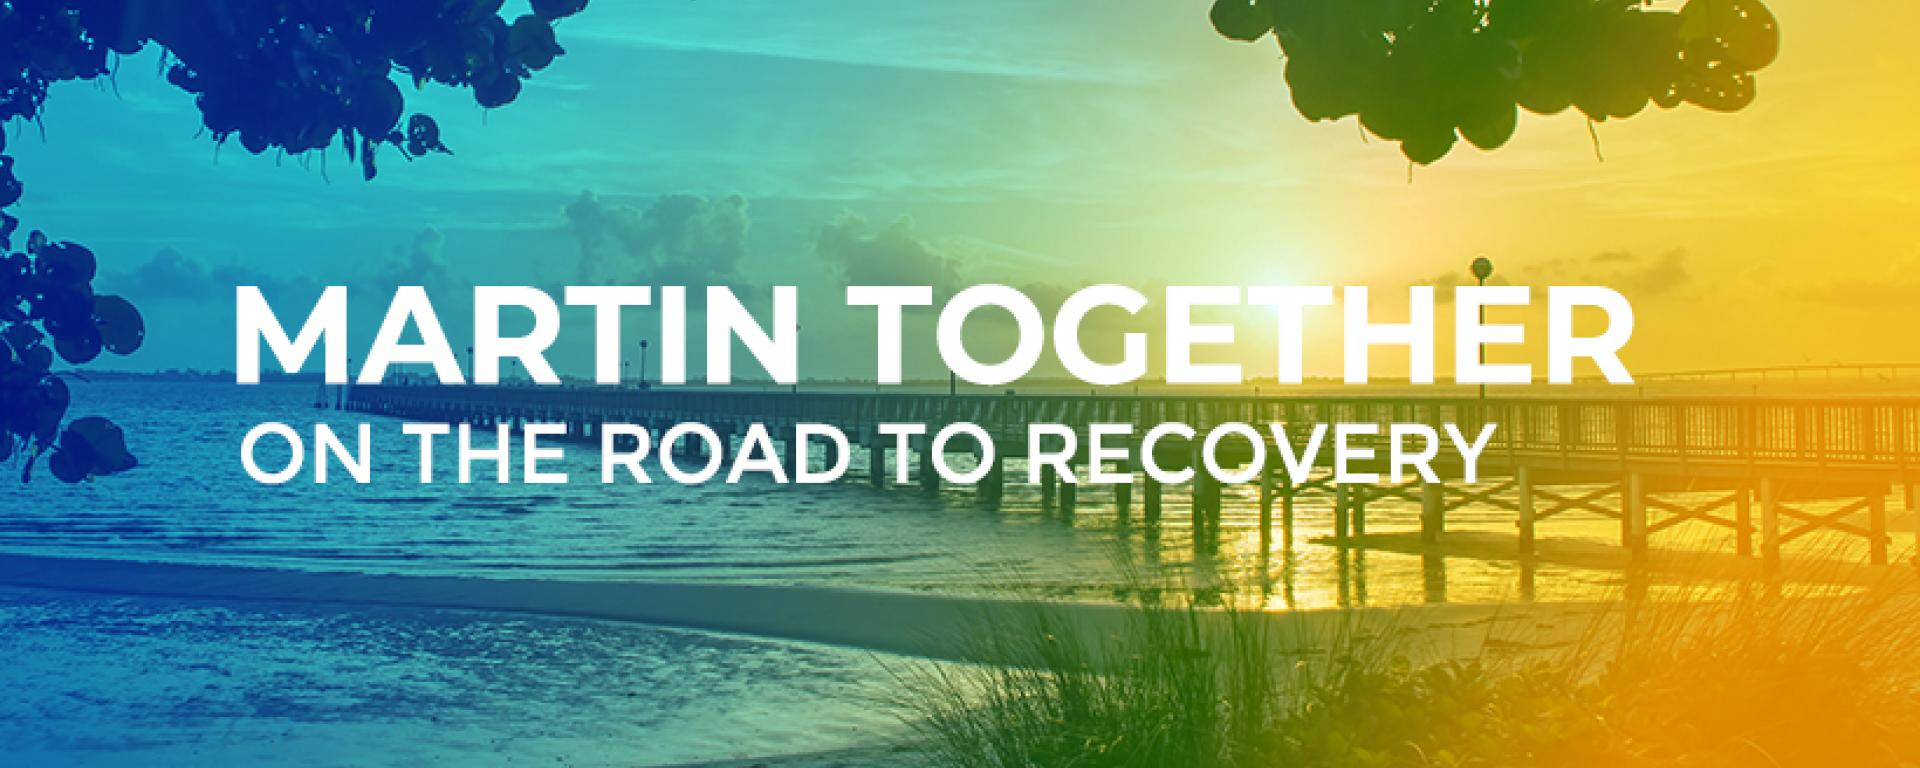 Martin Together - On the road to recovery